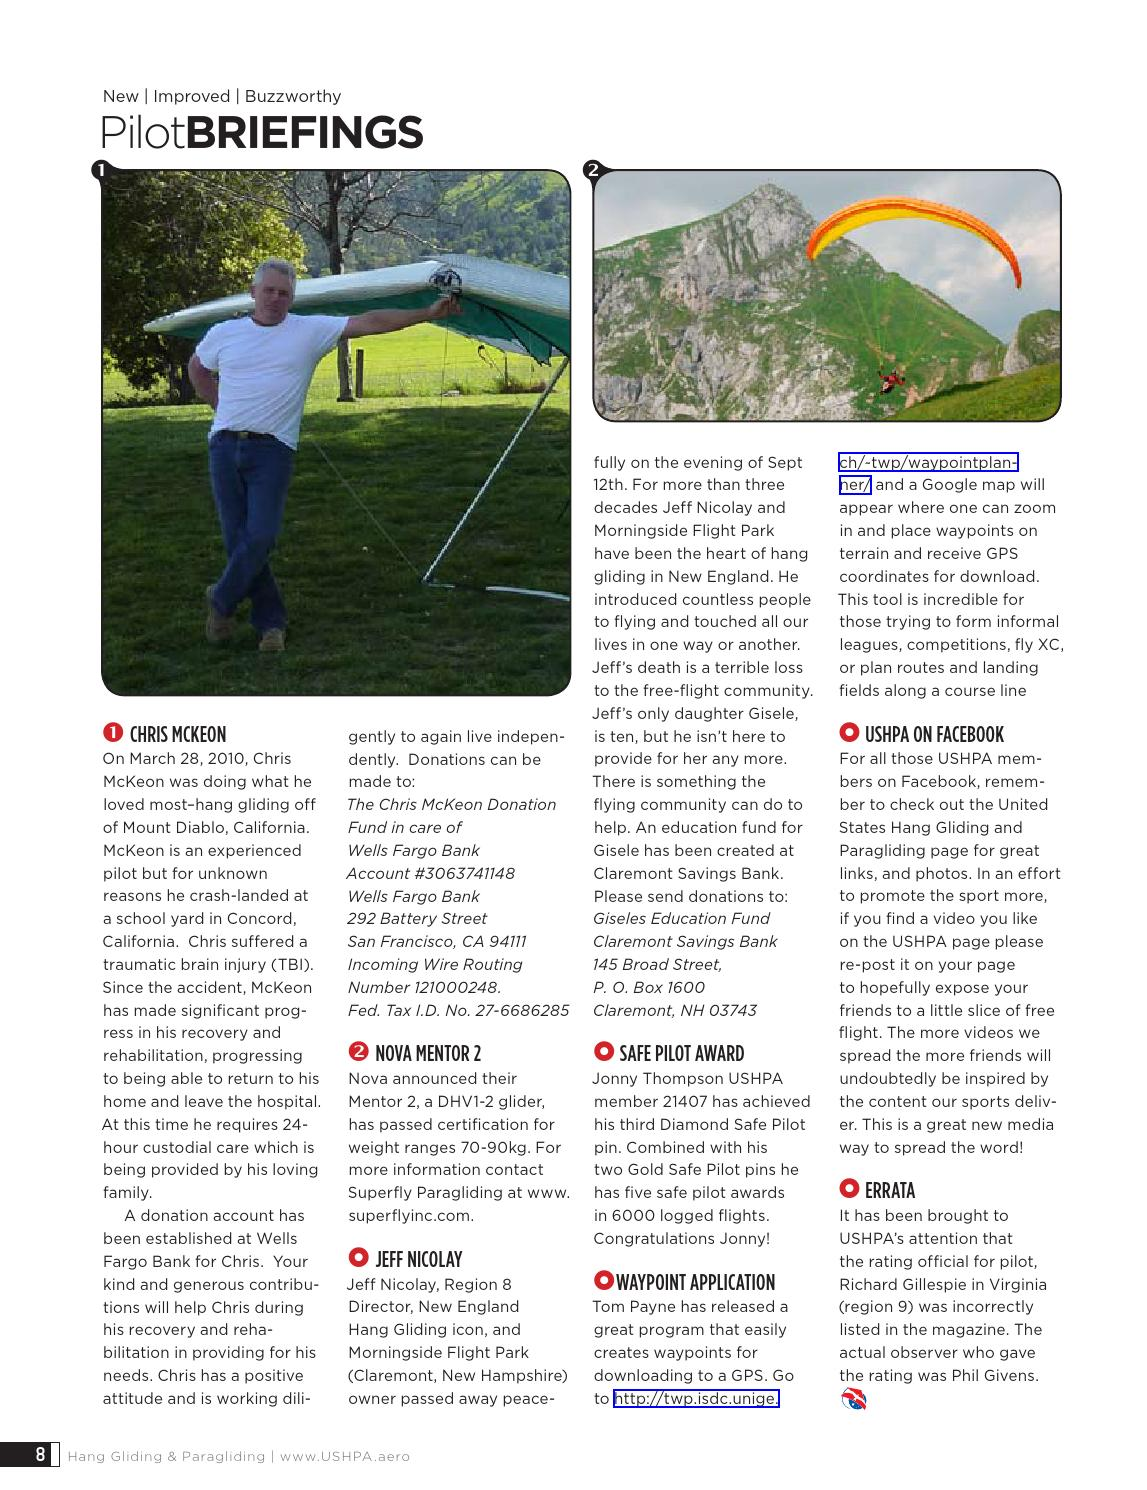 Hang Gliding & Paragliding Vol40/Iss12 Dec 2010 by US Hang